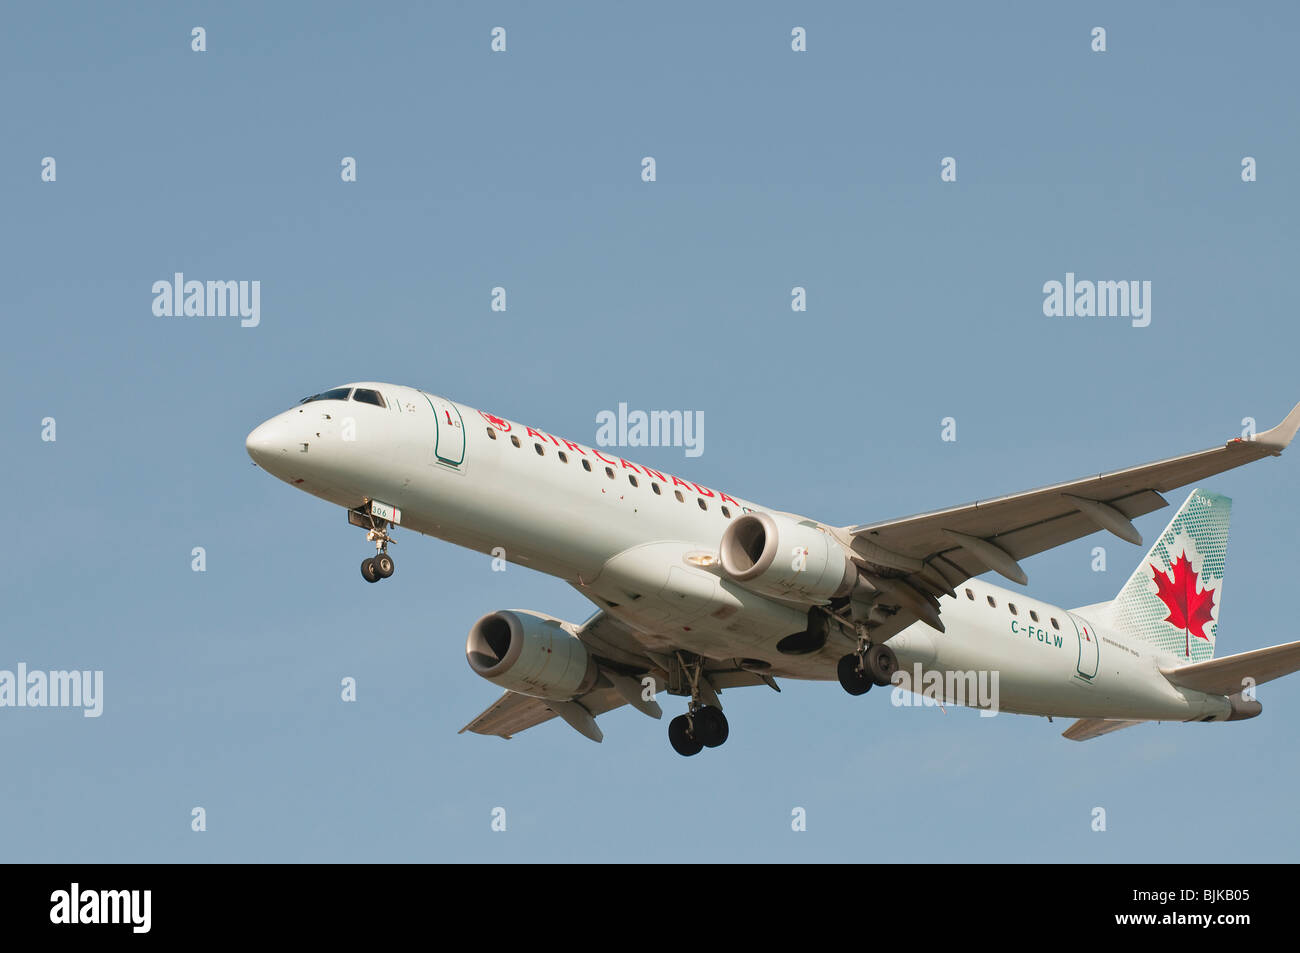 Air Canada Embraer 190 jetliner on final approach for landing - Stock Image